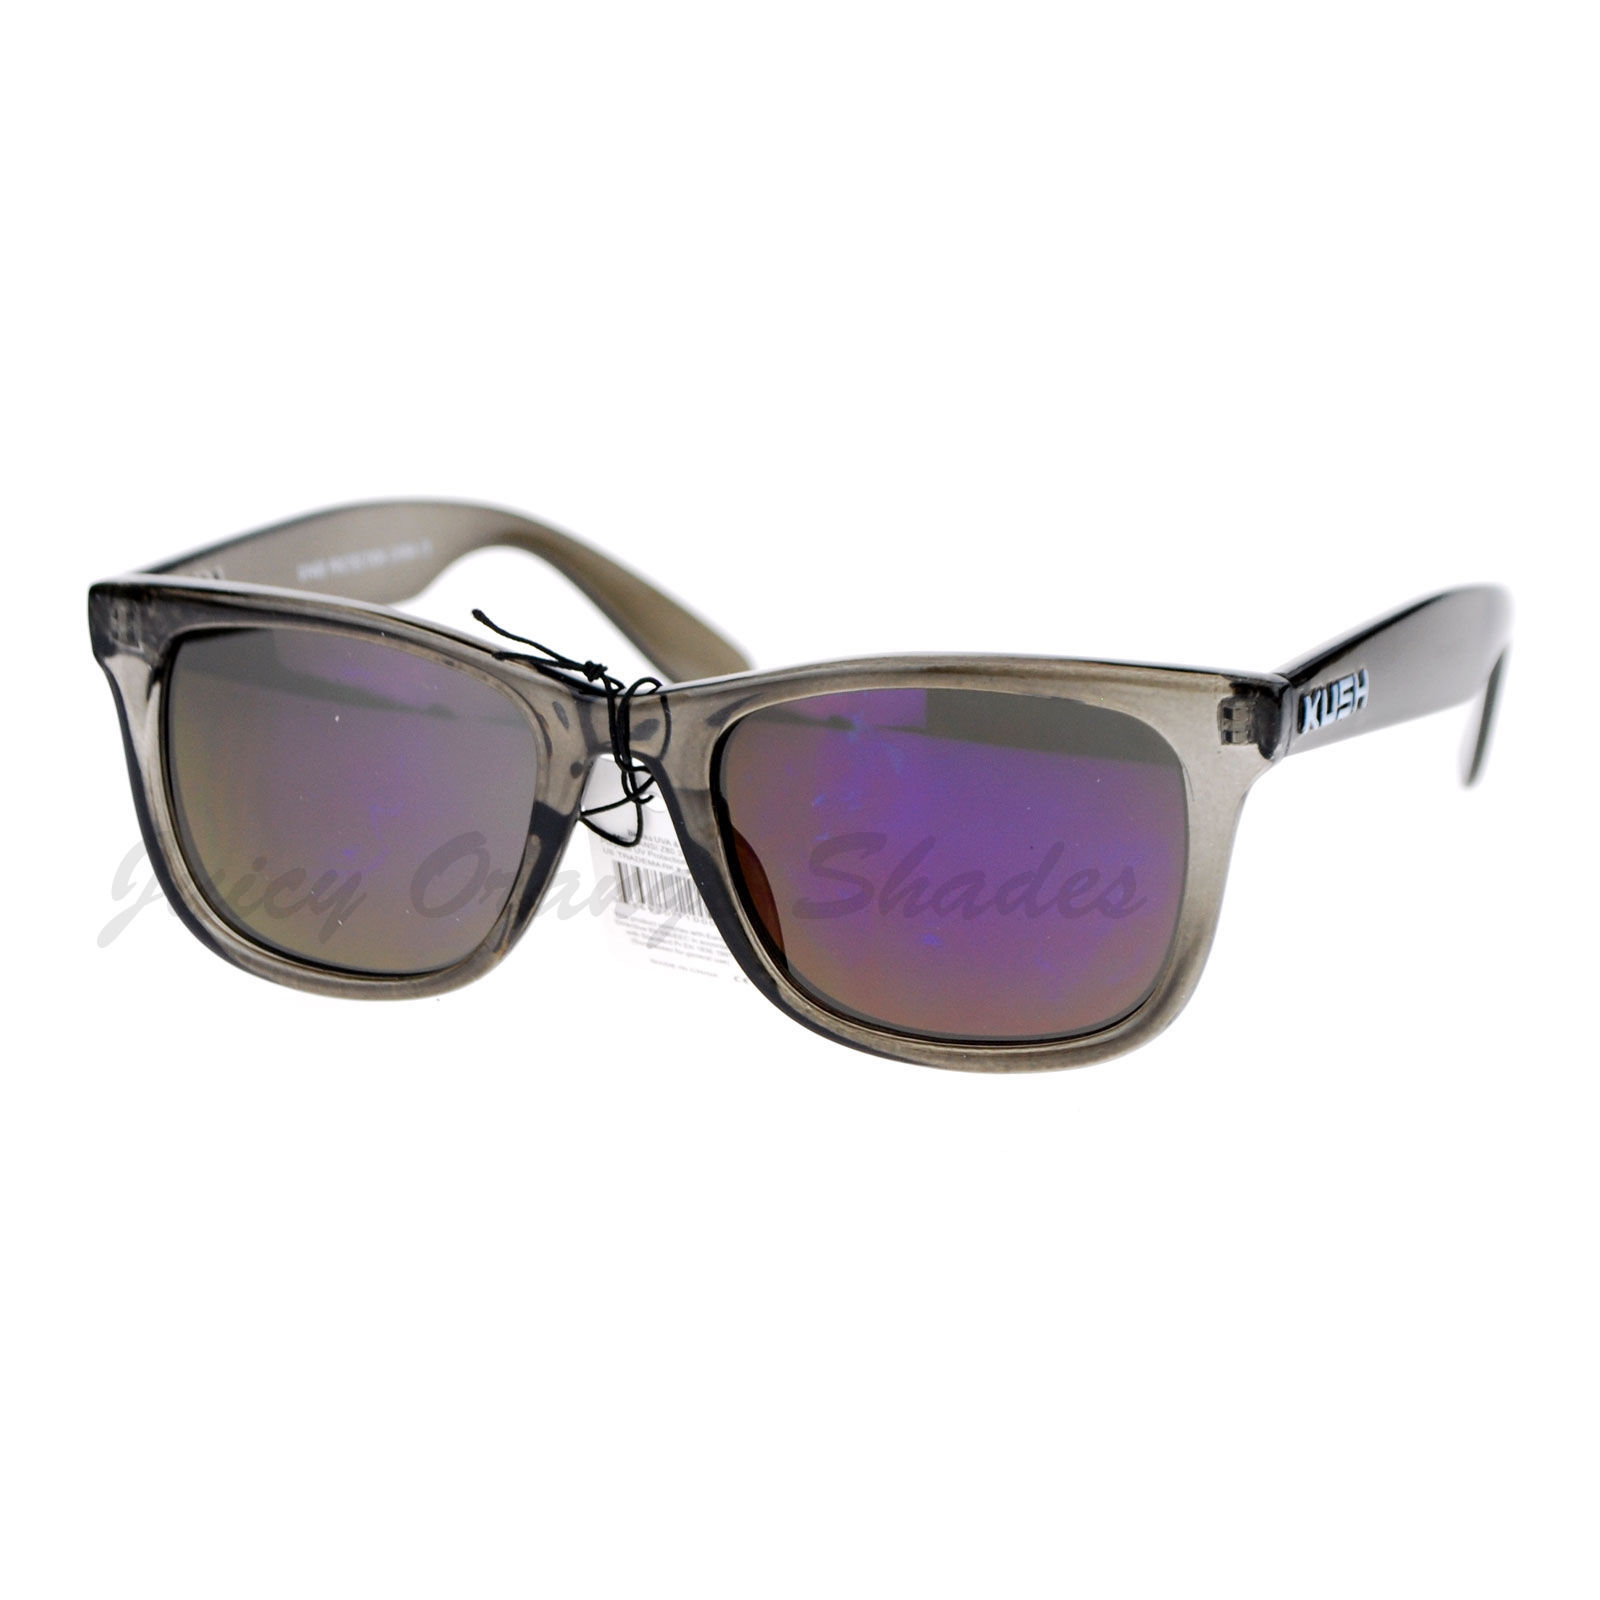 KUSH Fashion Sunglasses Multicolor Mirror Lens Gray Rectangular Frame